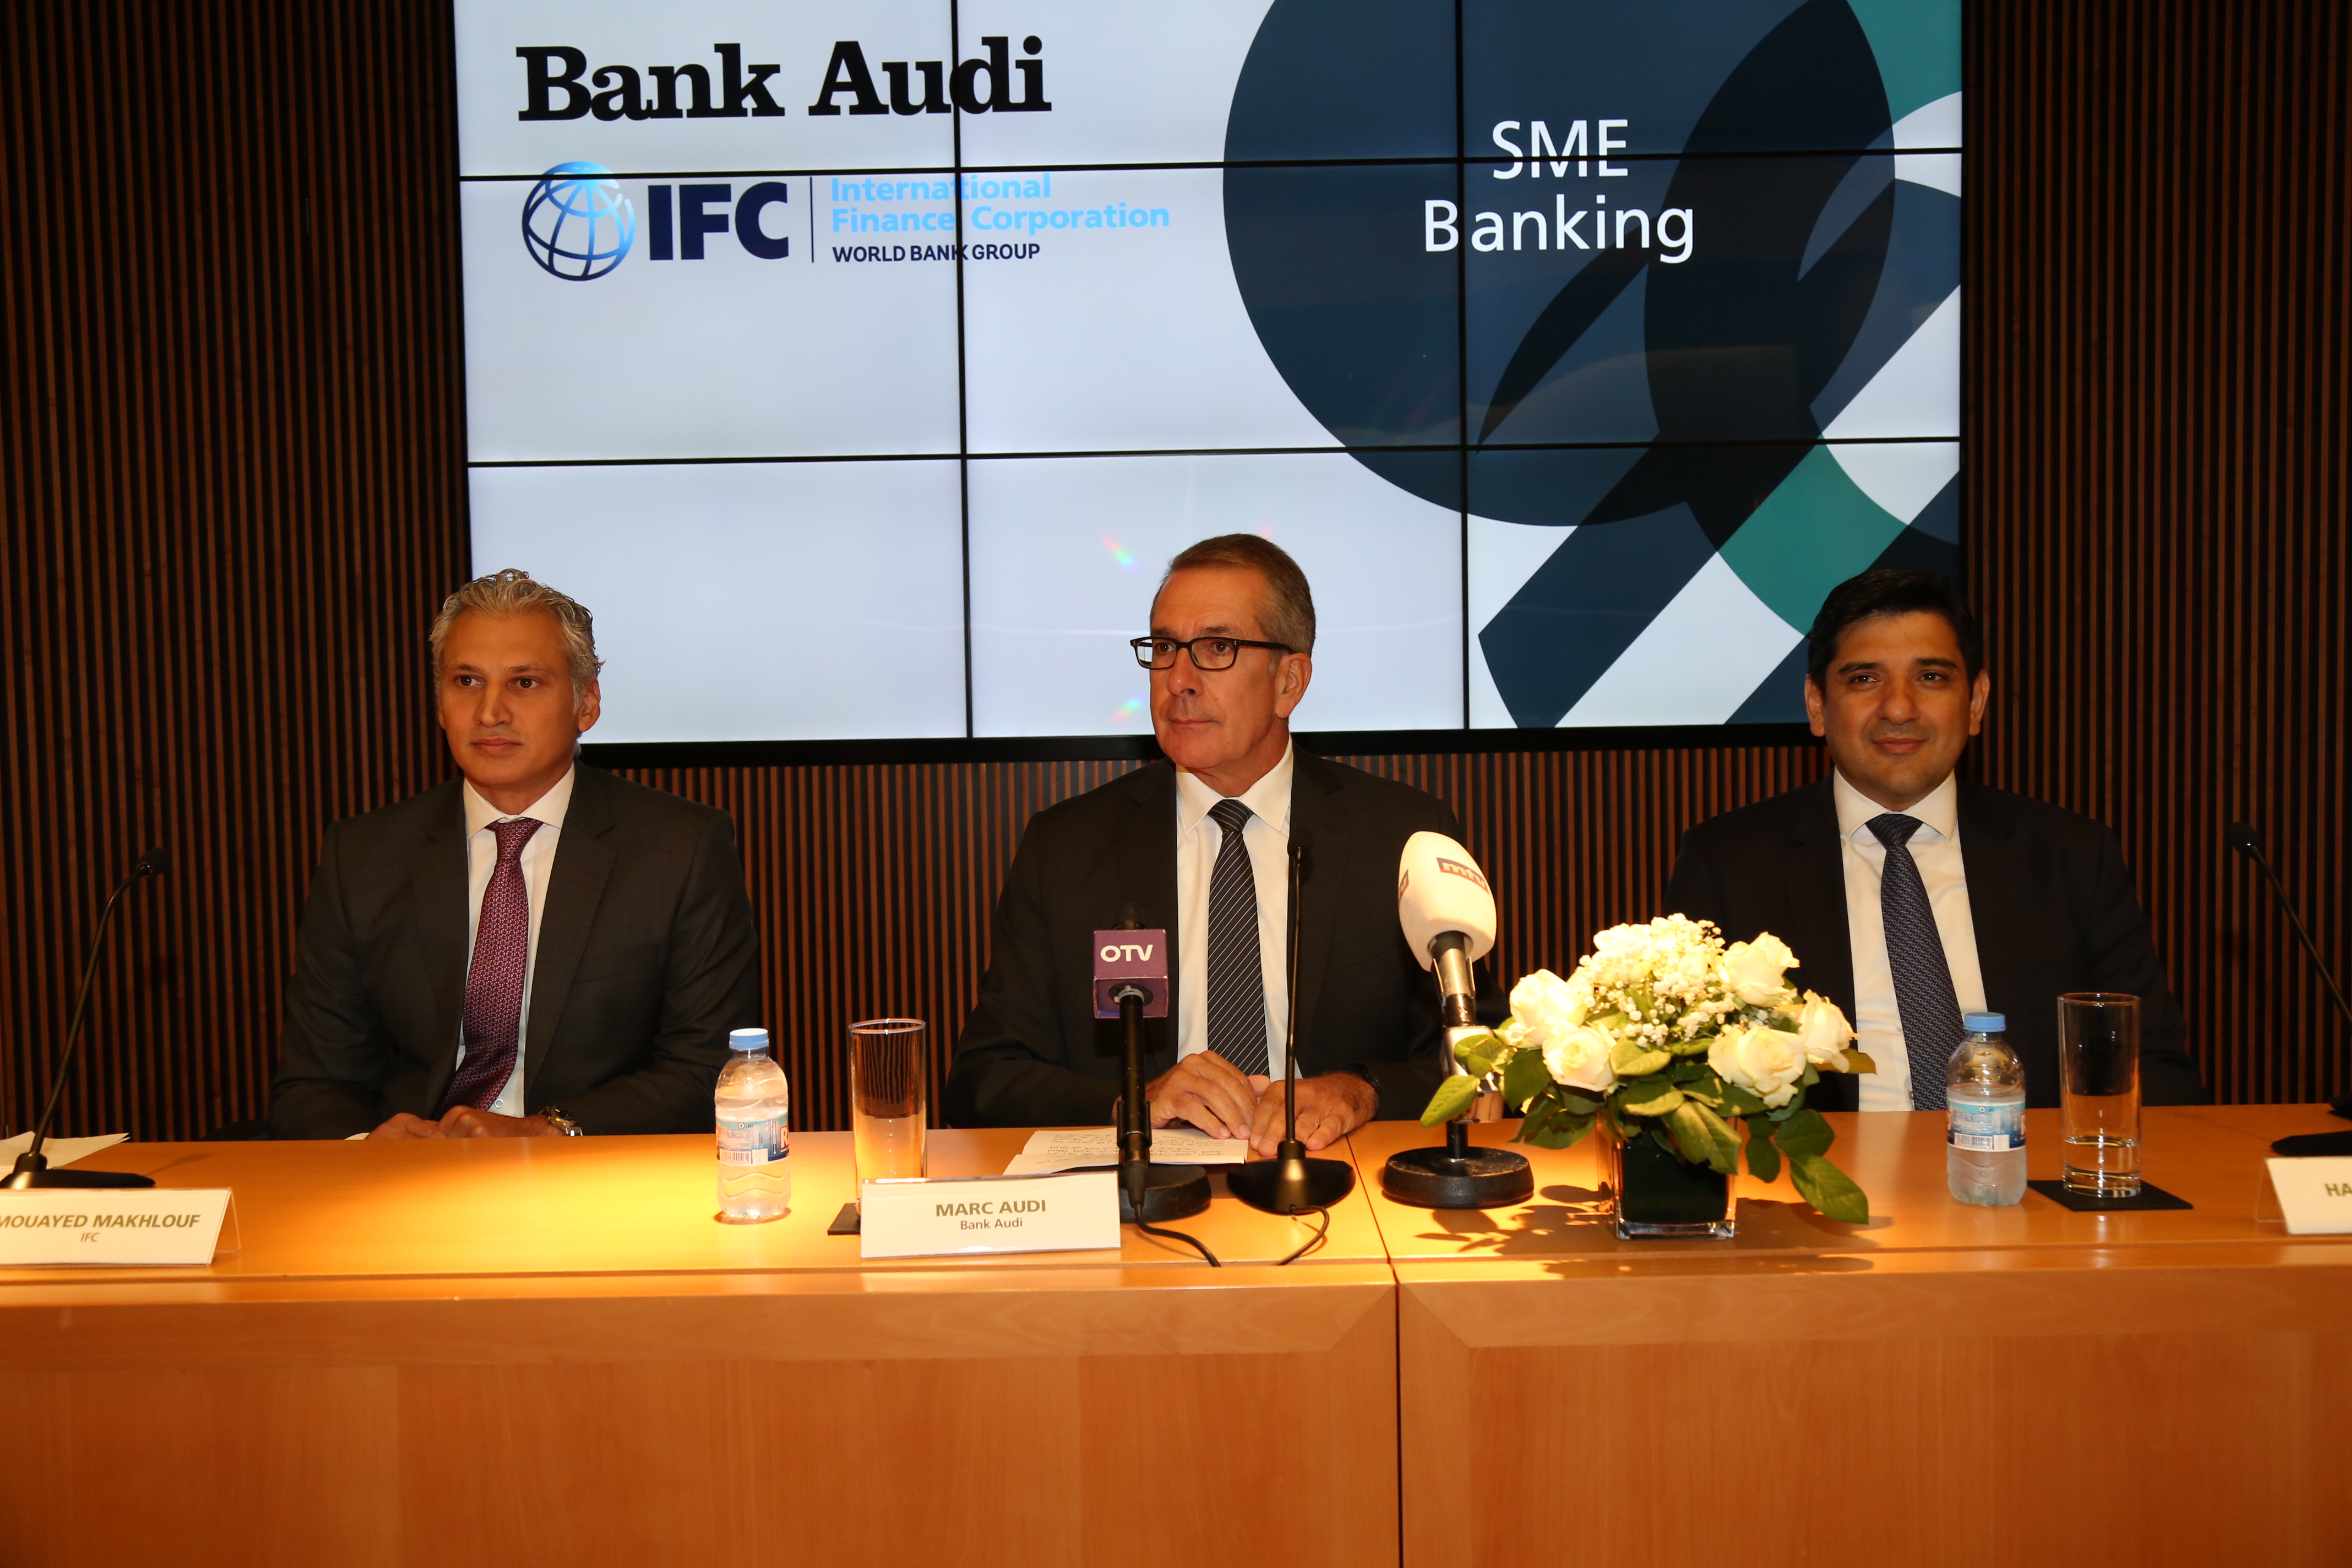 SME Banking launch